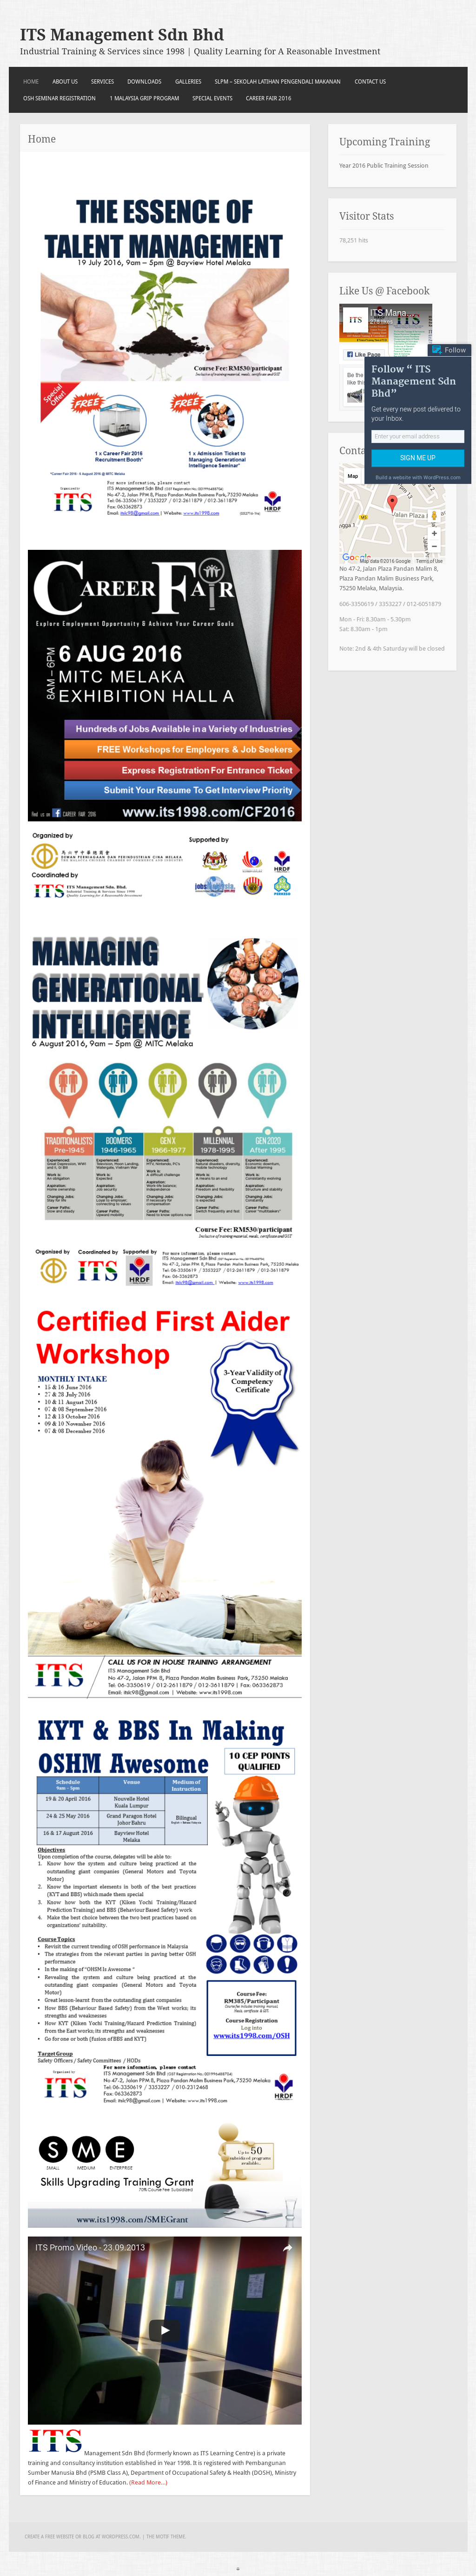 Its Management Sdn Bhd - Industrial Training & Services